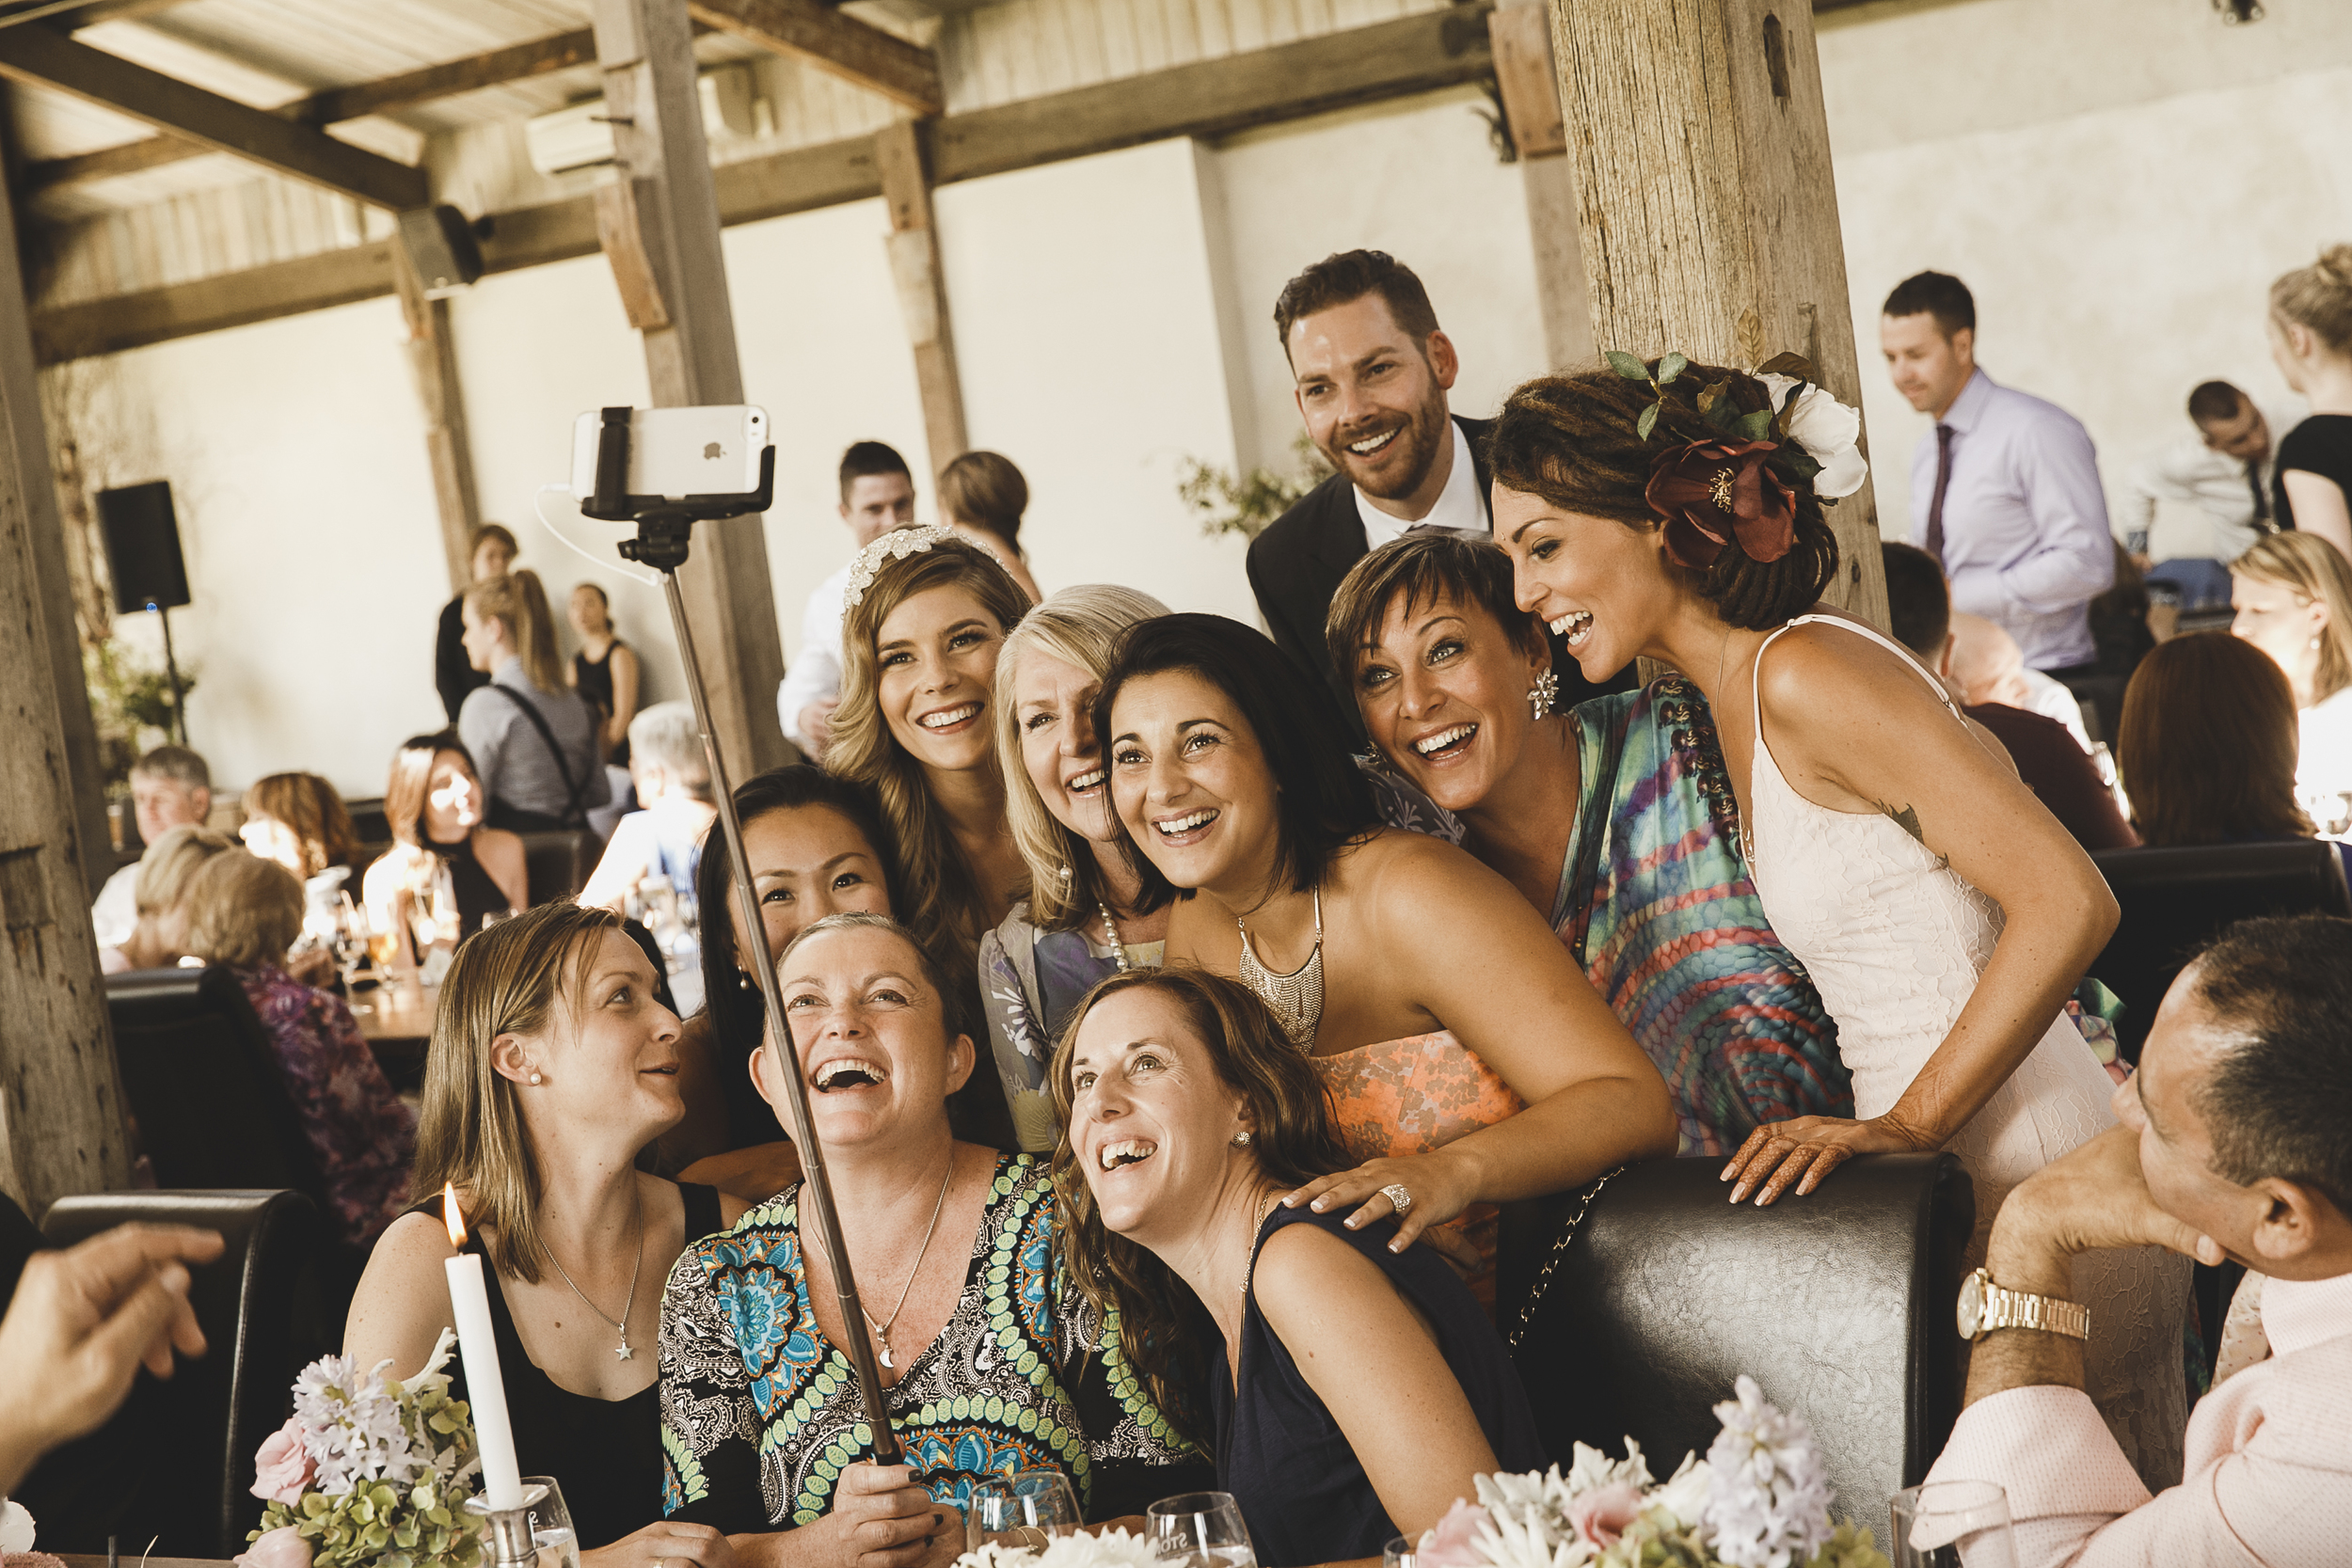 1. Your guests take their own photos on their mobile device...